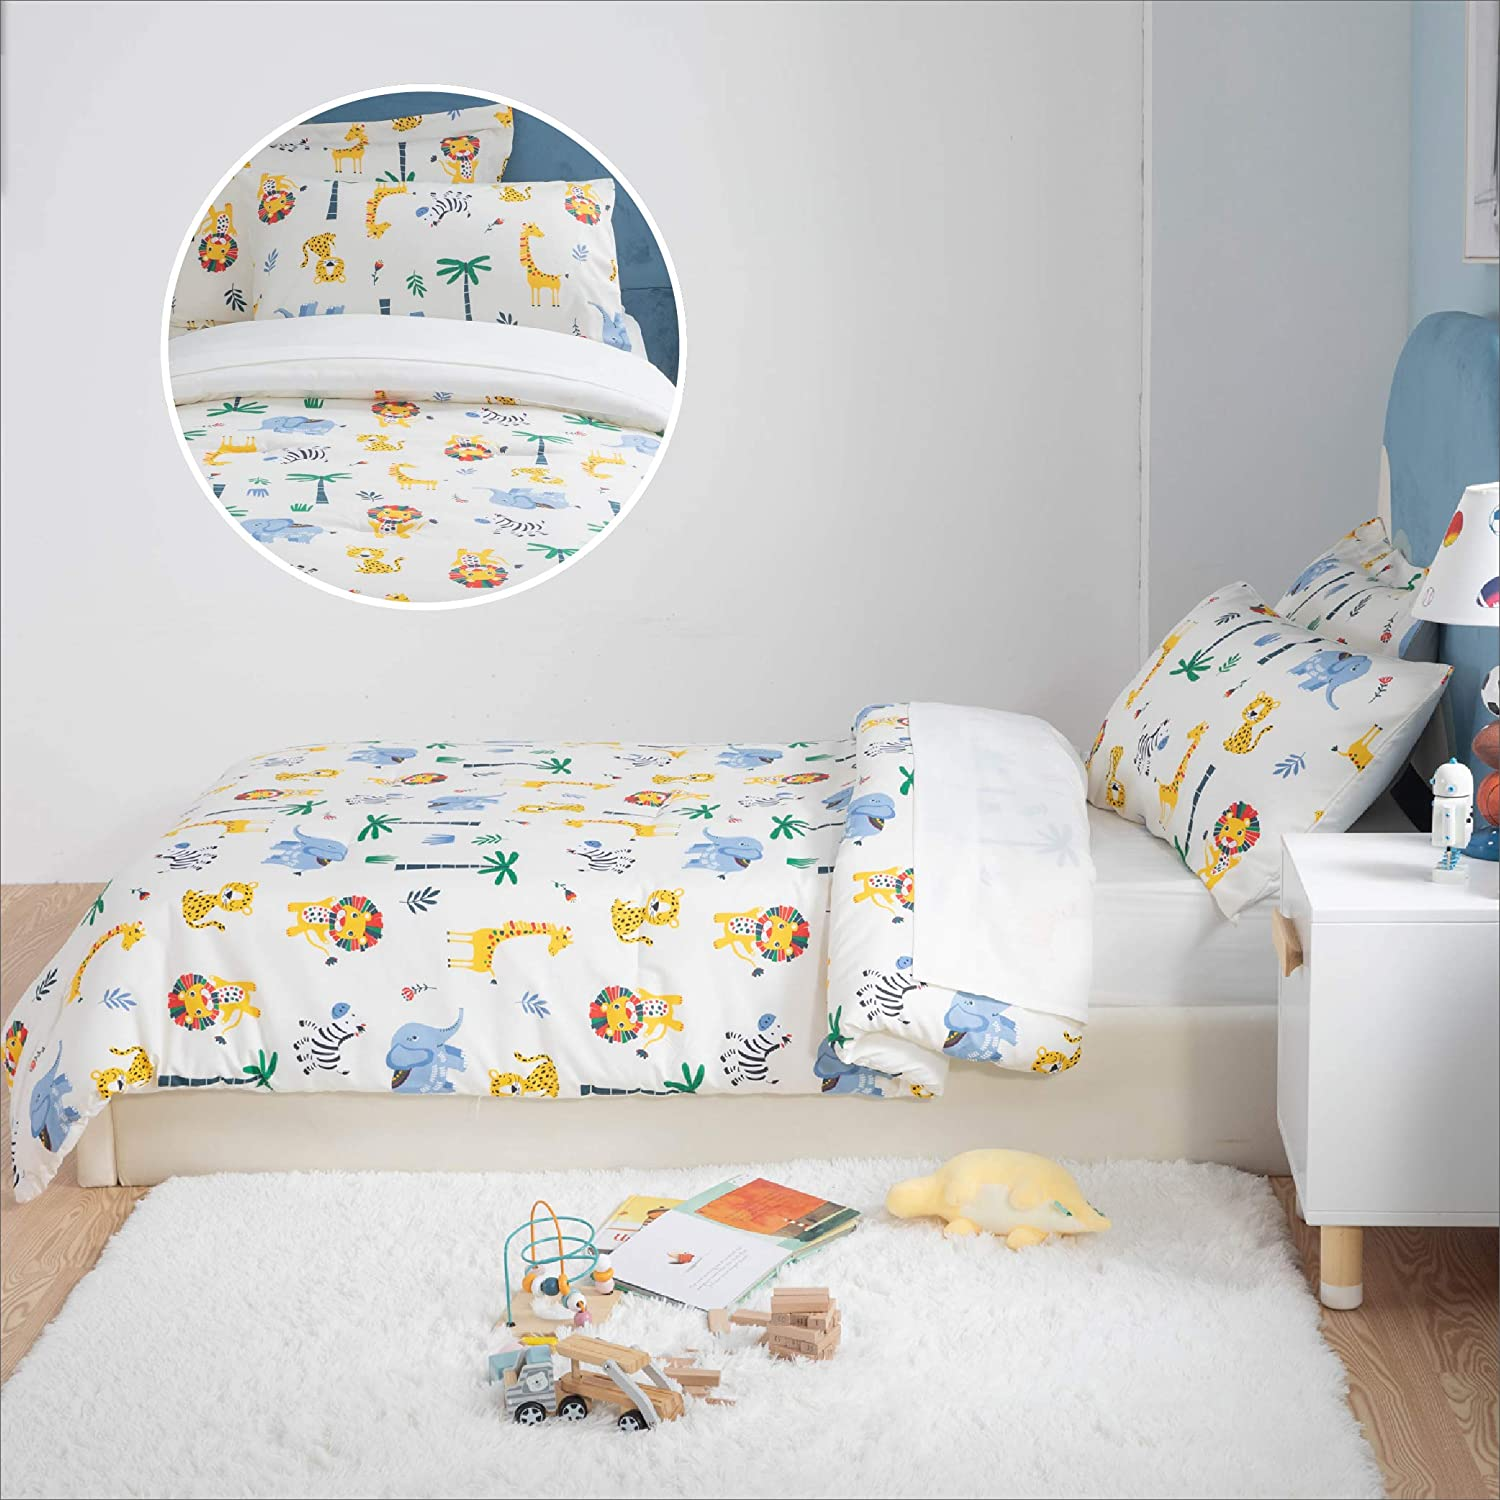 Multi-Color Safari Zoo Animals Bedding Easy Care Super Soft Microfiber Comforter and Sheets Set Cream White,Twin 5 Pieces Bed in a Bag Bedsure Kids Twin Bedding Sets for Boys